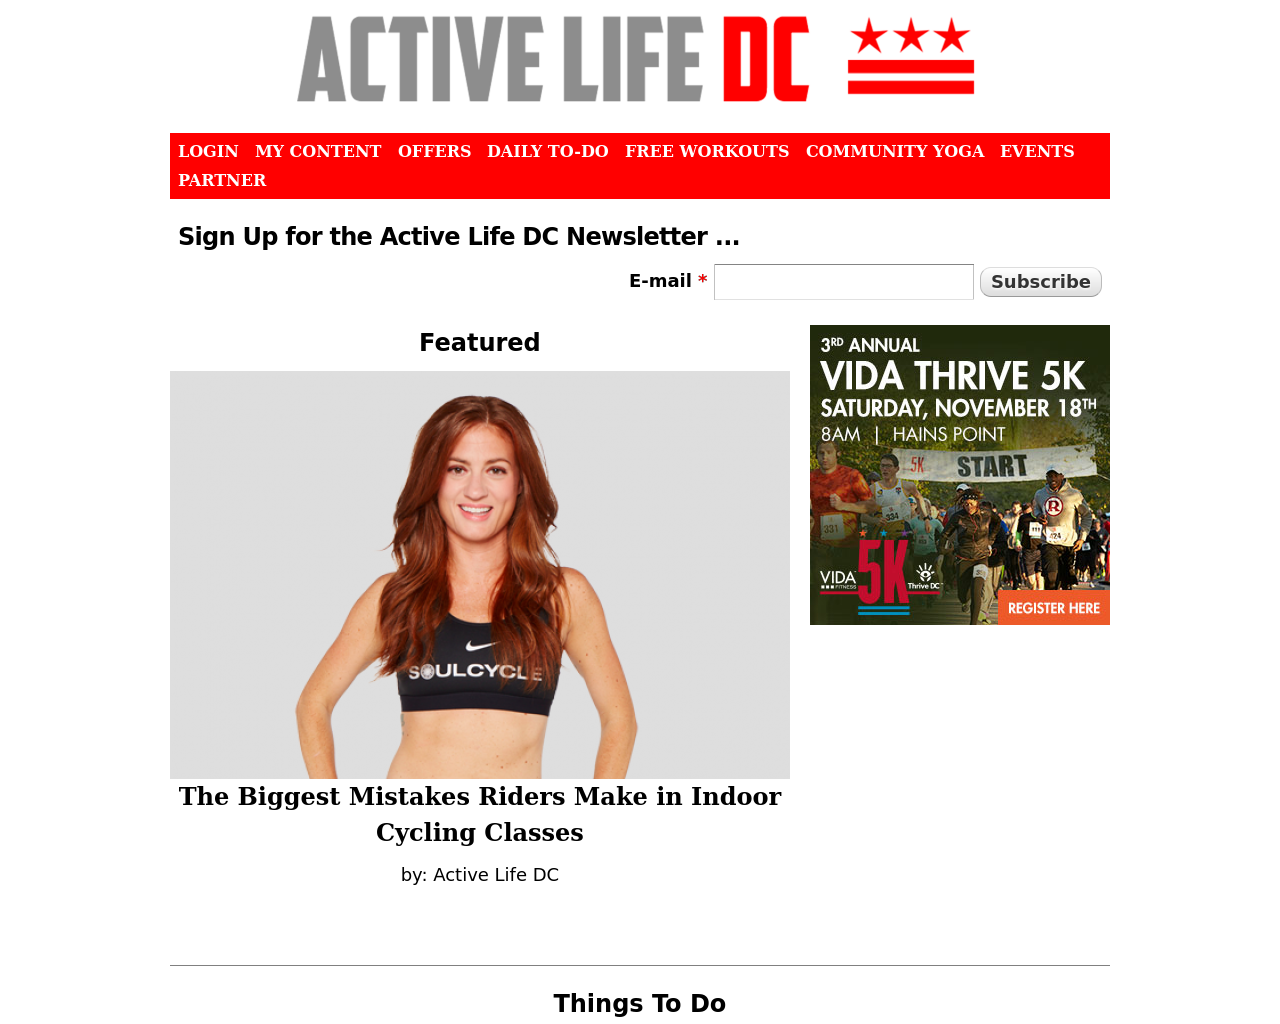 Active-Life-DC-Advertising-Reviews-Pricing